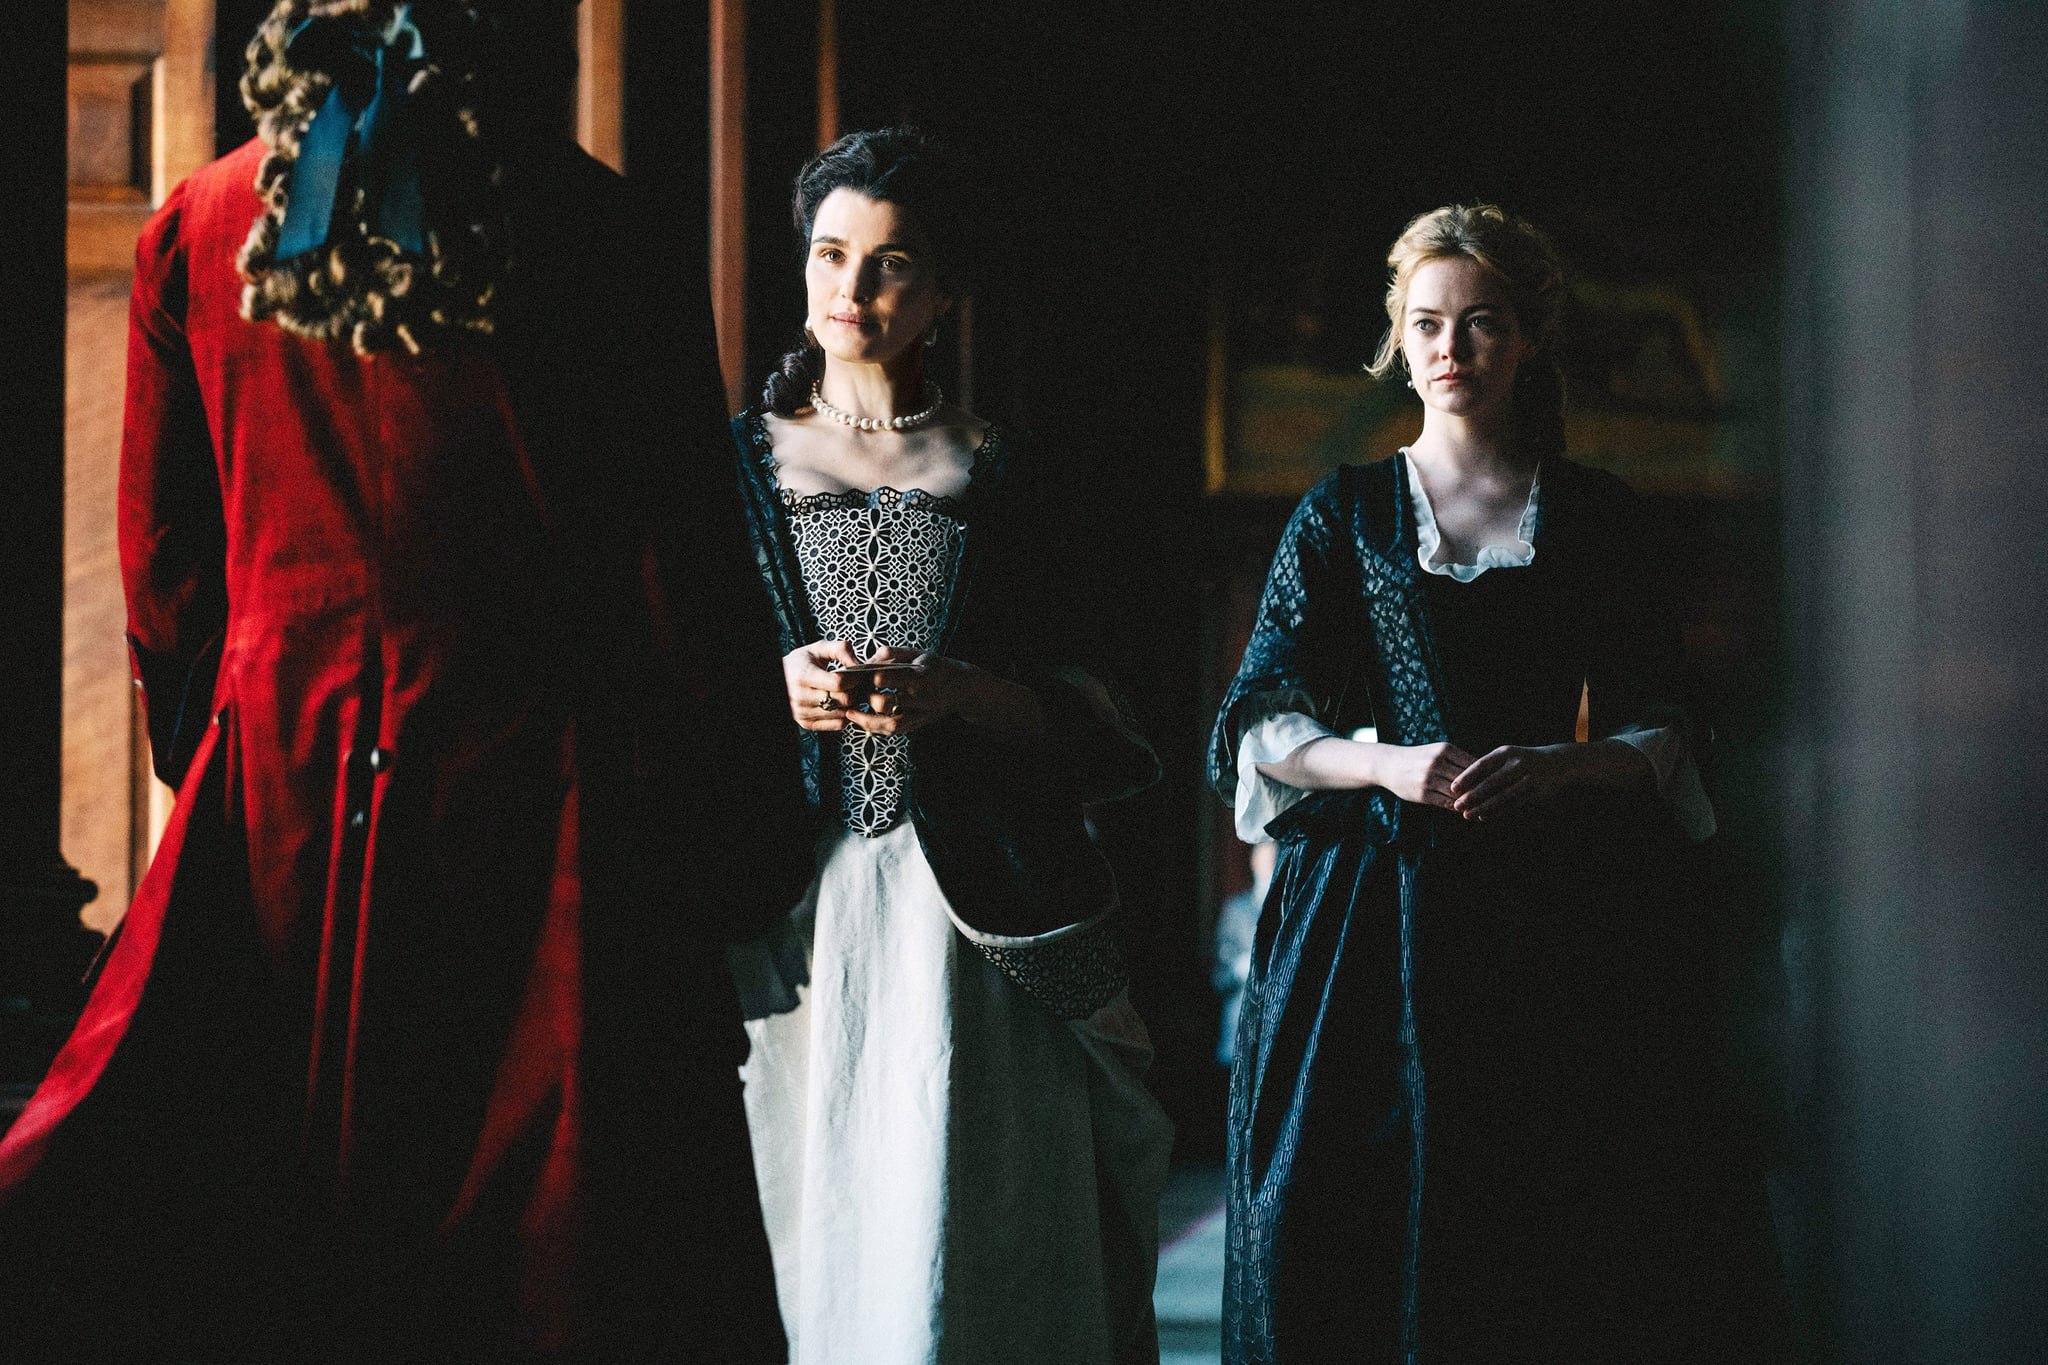 THE FAVOURITE, back, from left: Rachel Weisz, Emma Stone, 2018. ph: Atsushi Nishijima / TM & copyright  Fox Seachlight Pictures. All rights reserved. /Courtesy Everett Collection